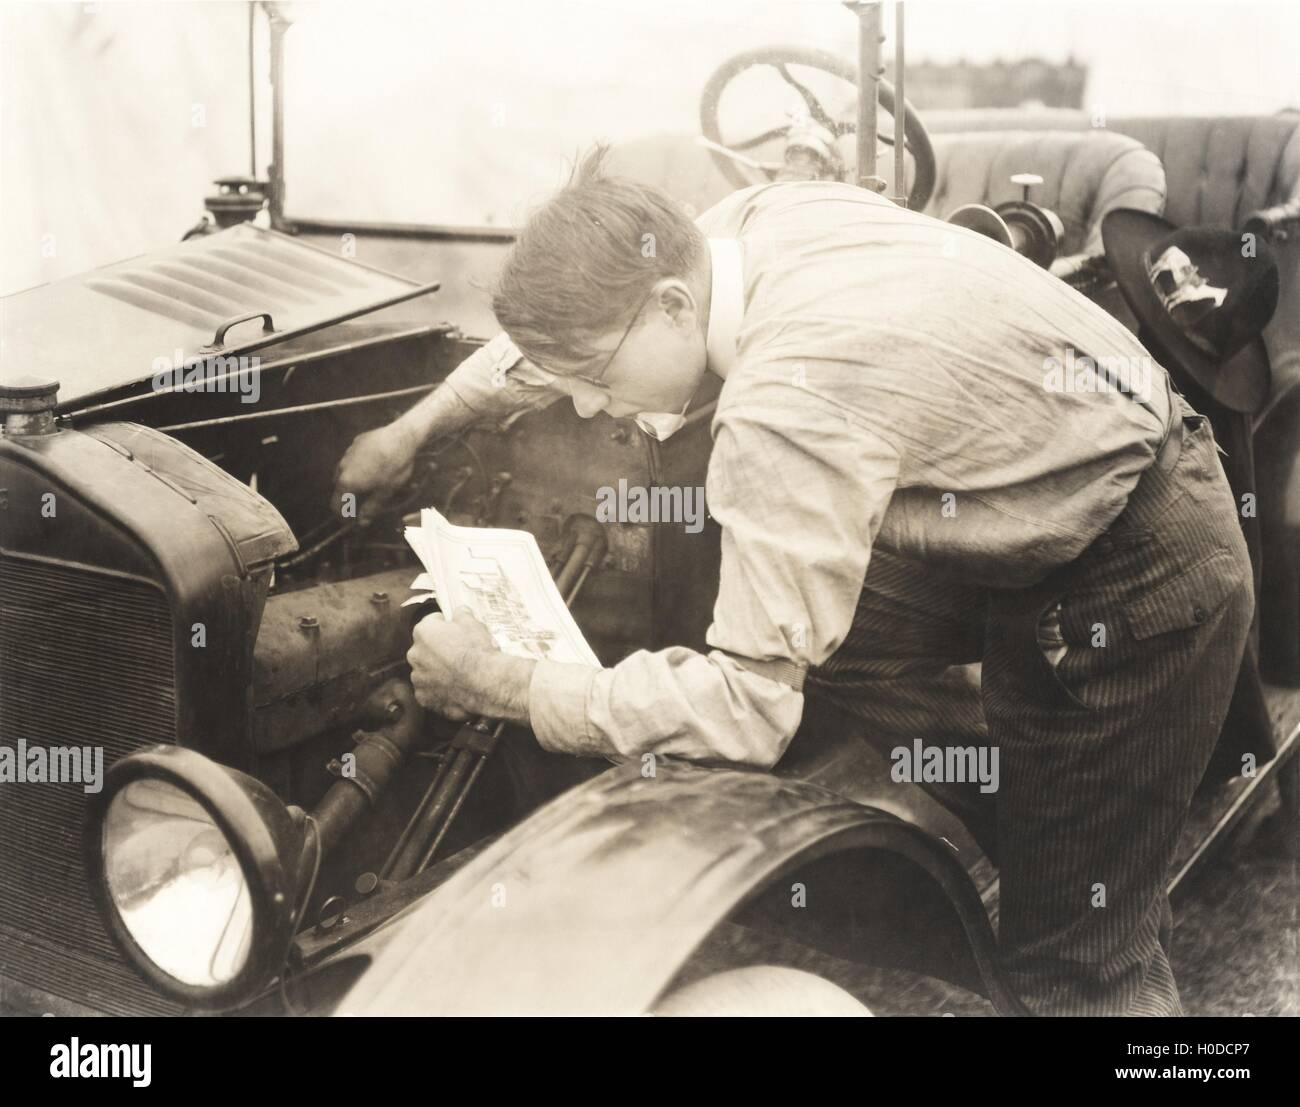 Man reading instructions on how to fix car - Stock Image